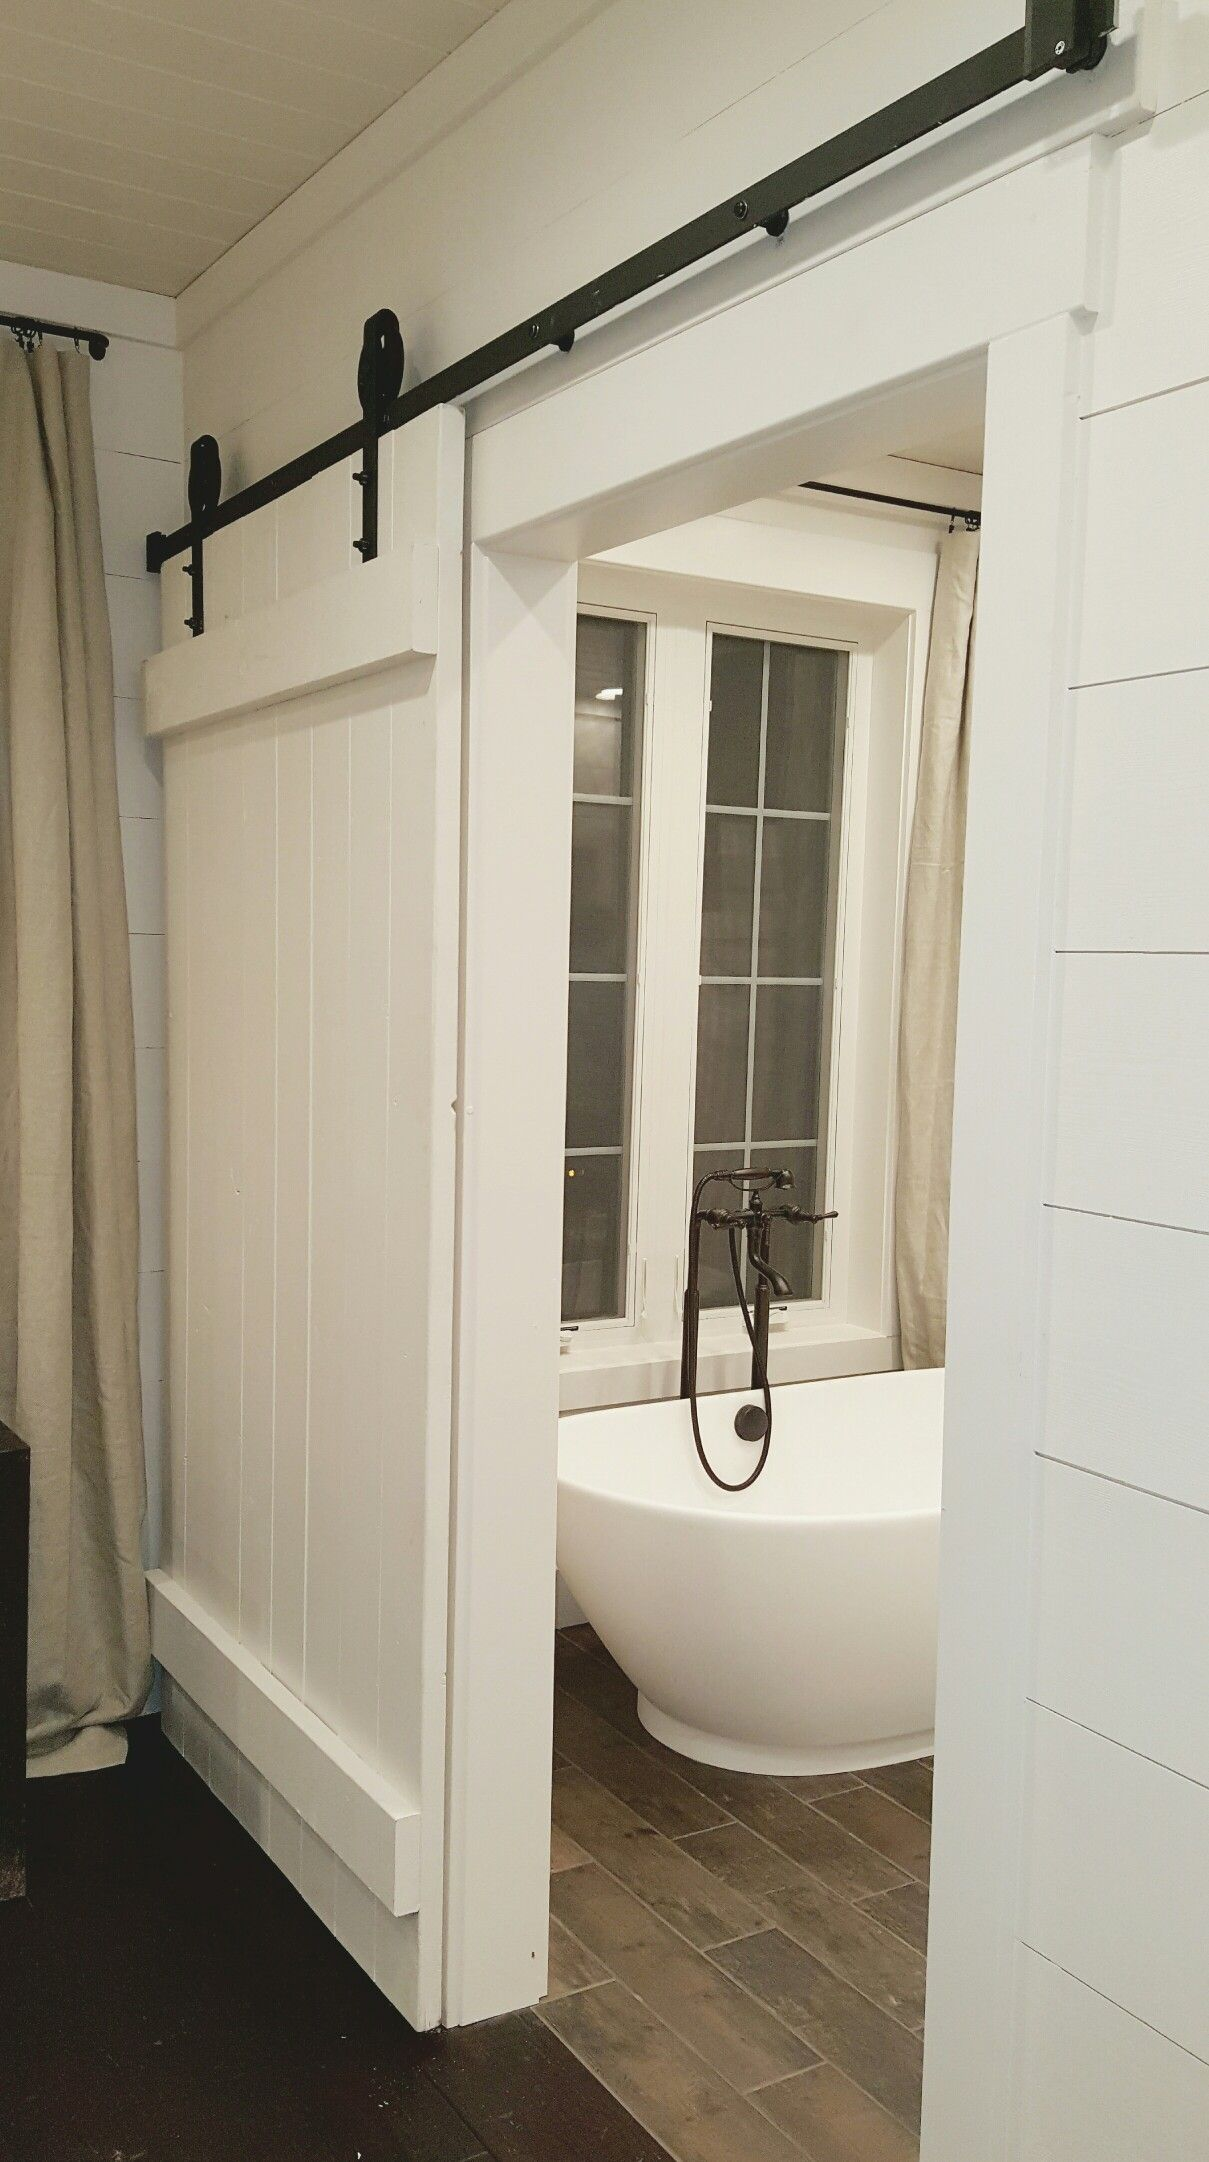 Bathroom barn doors with shiplap walls and Roman tub | Forever Home ...